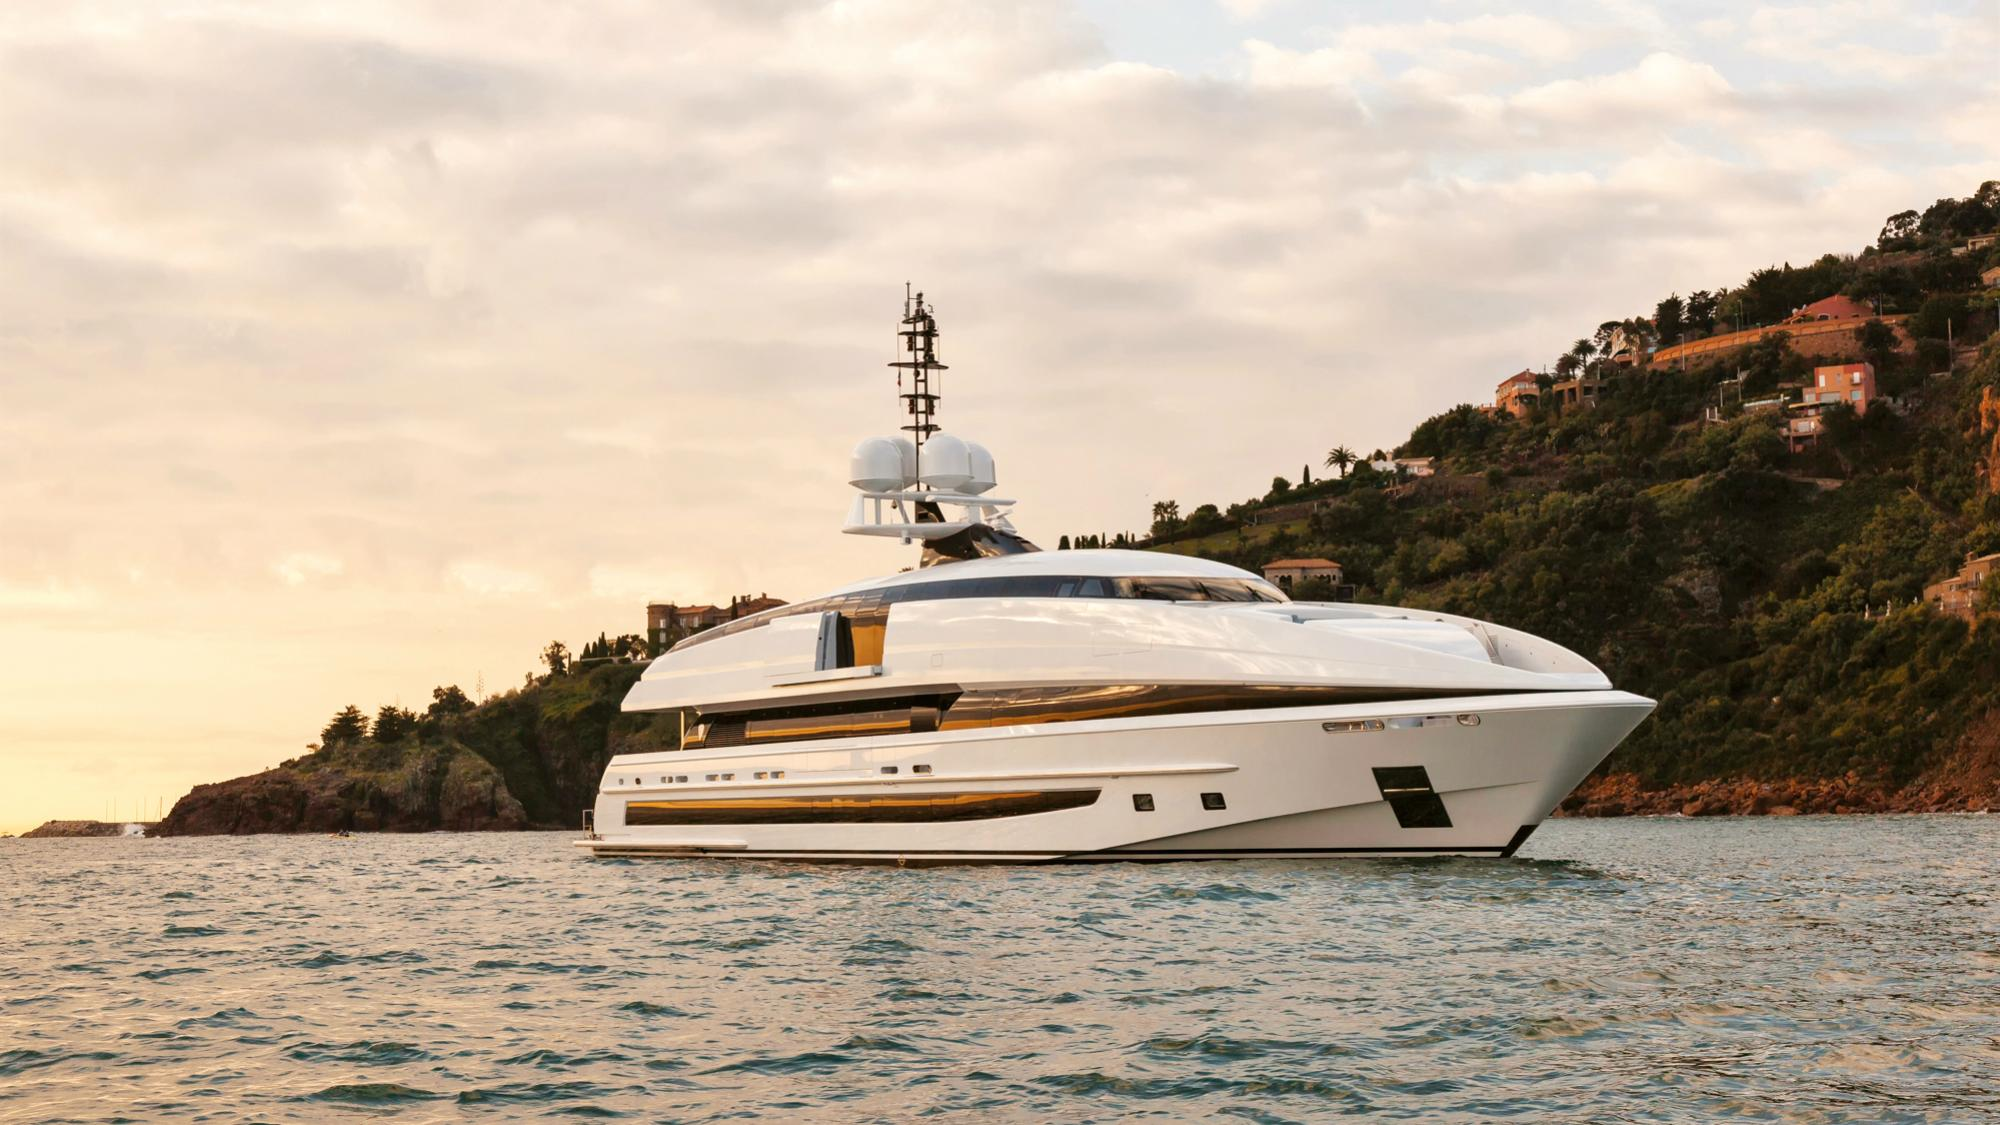 crazy-me-motor-yacht-heesen-2013-50m-profile-sunset